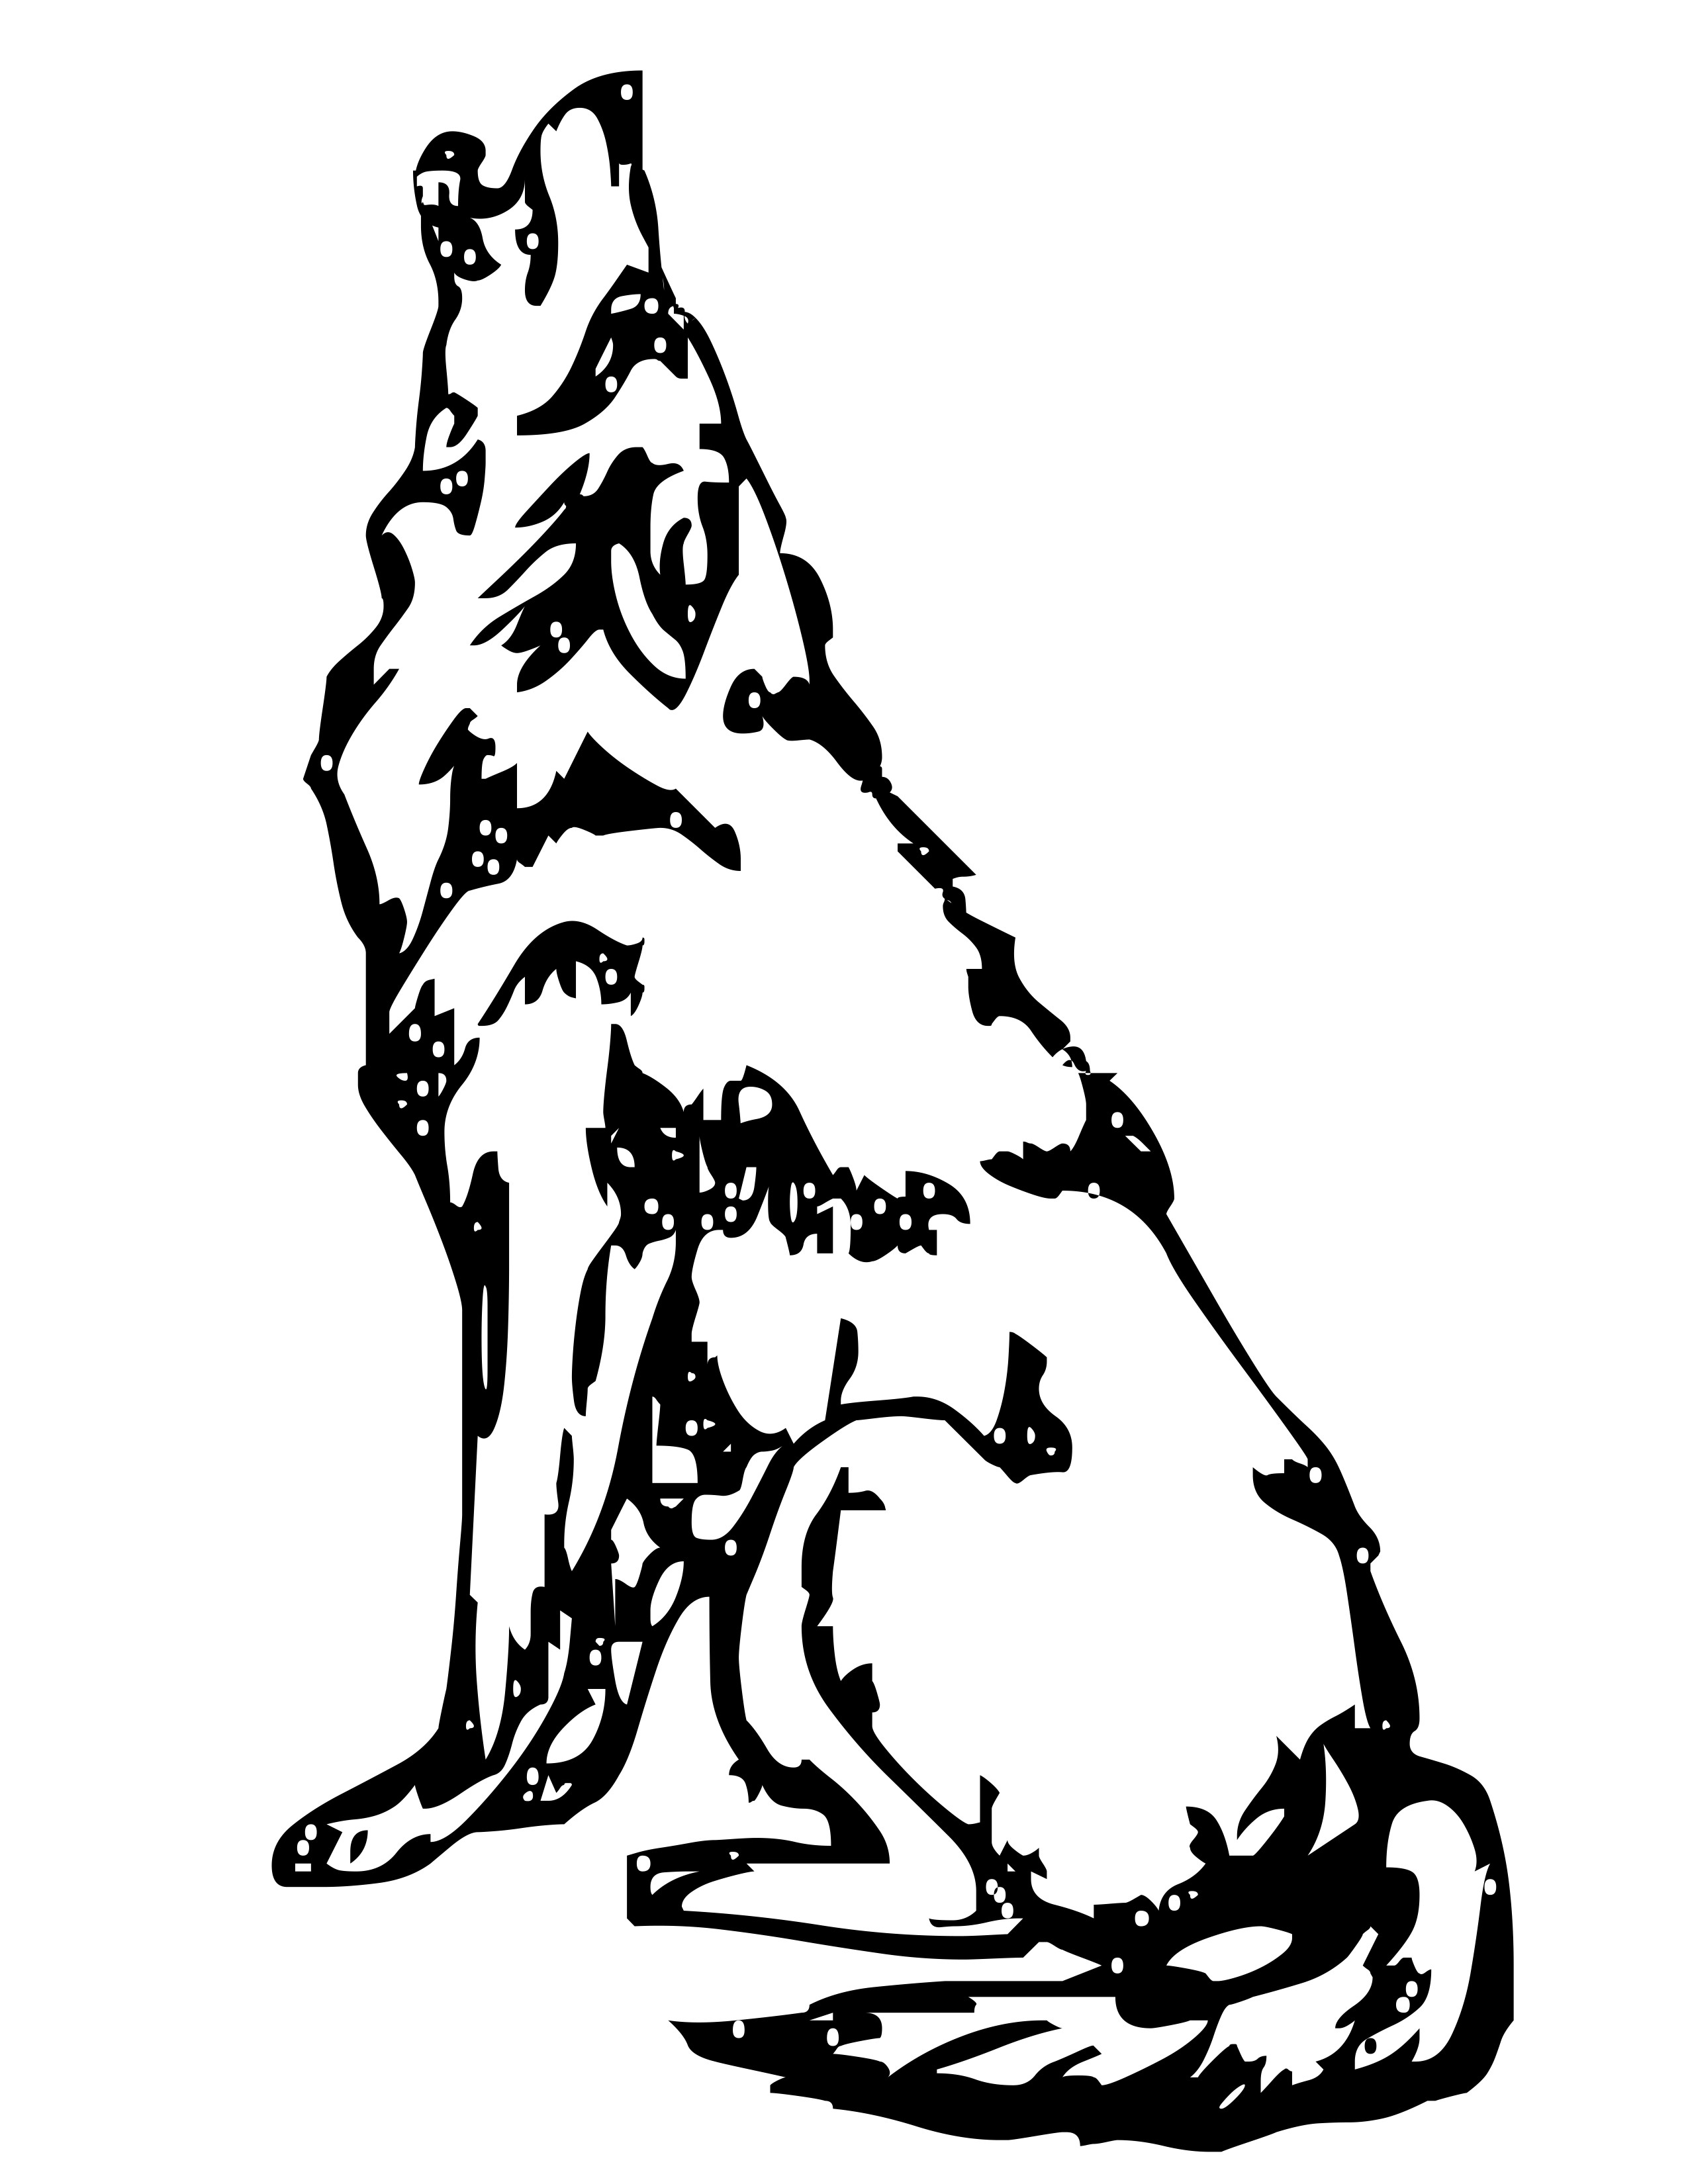 wolf pictures to print get this wolf coloring pages for adults free printable 09418 pictures print wolf to